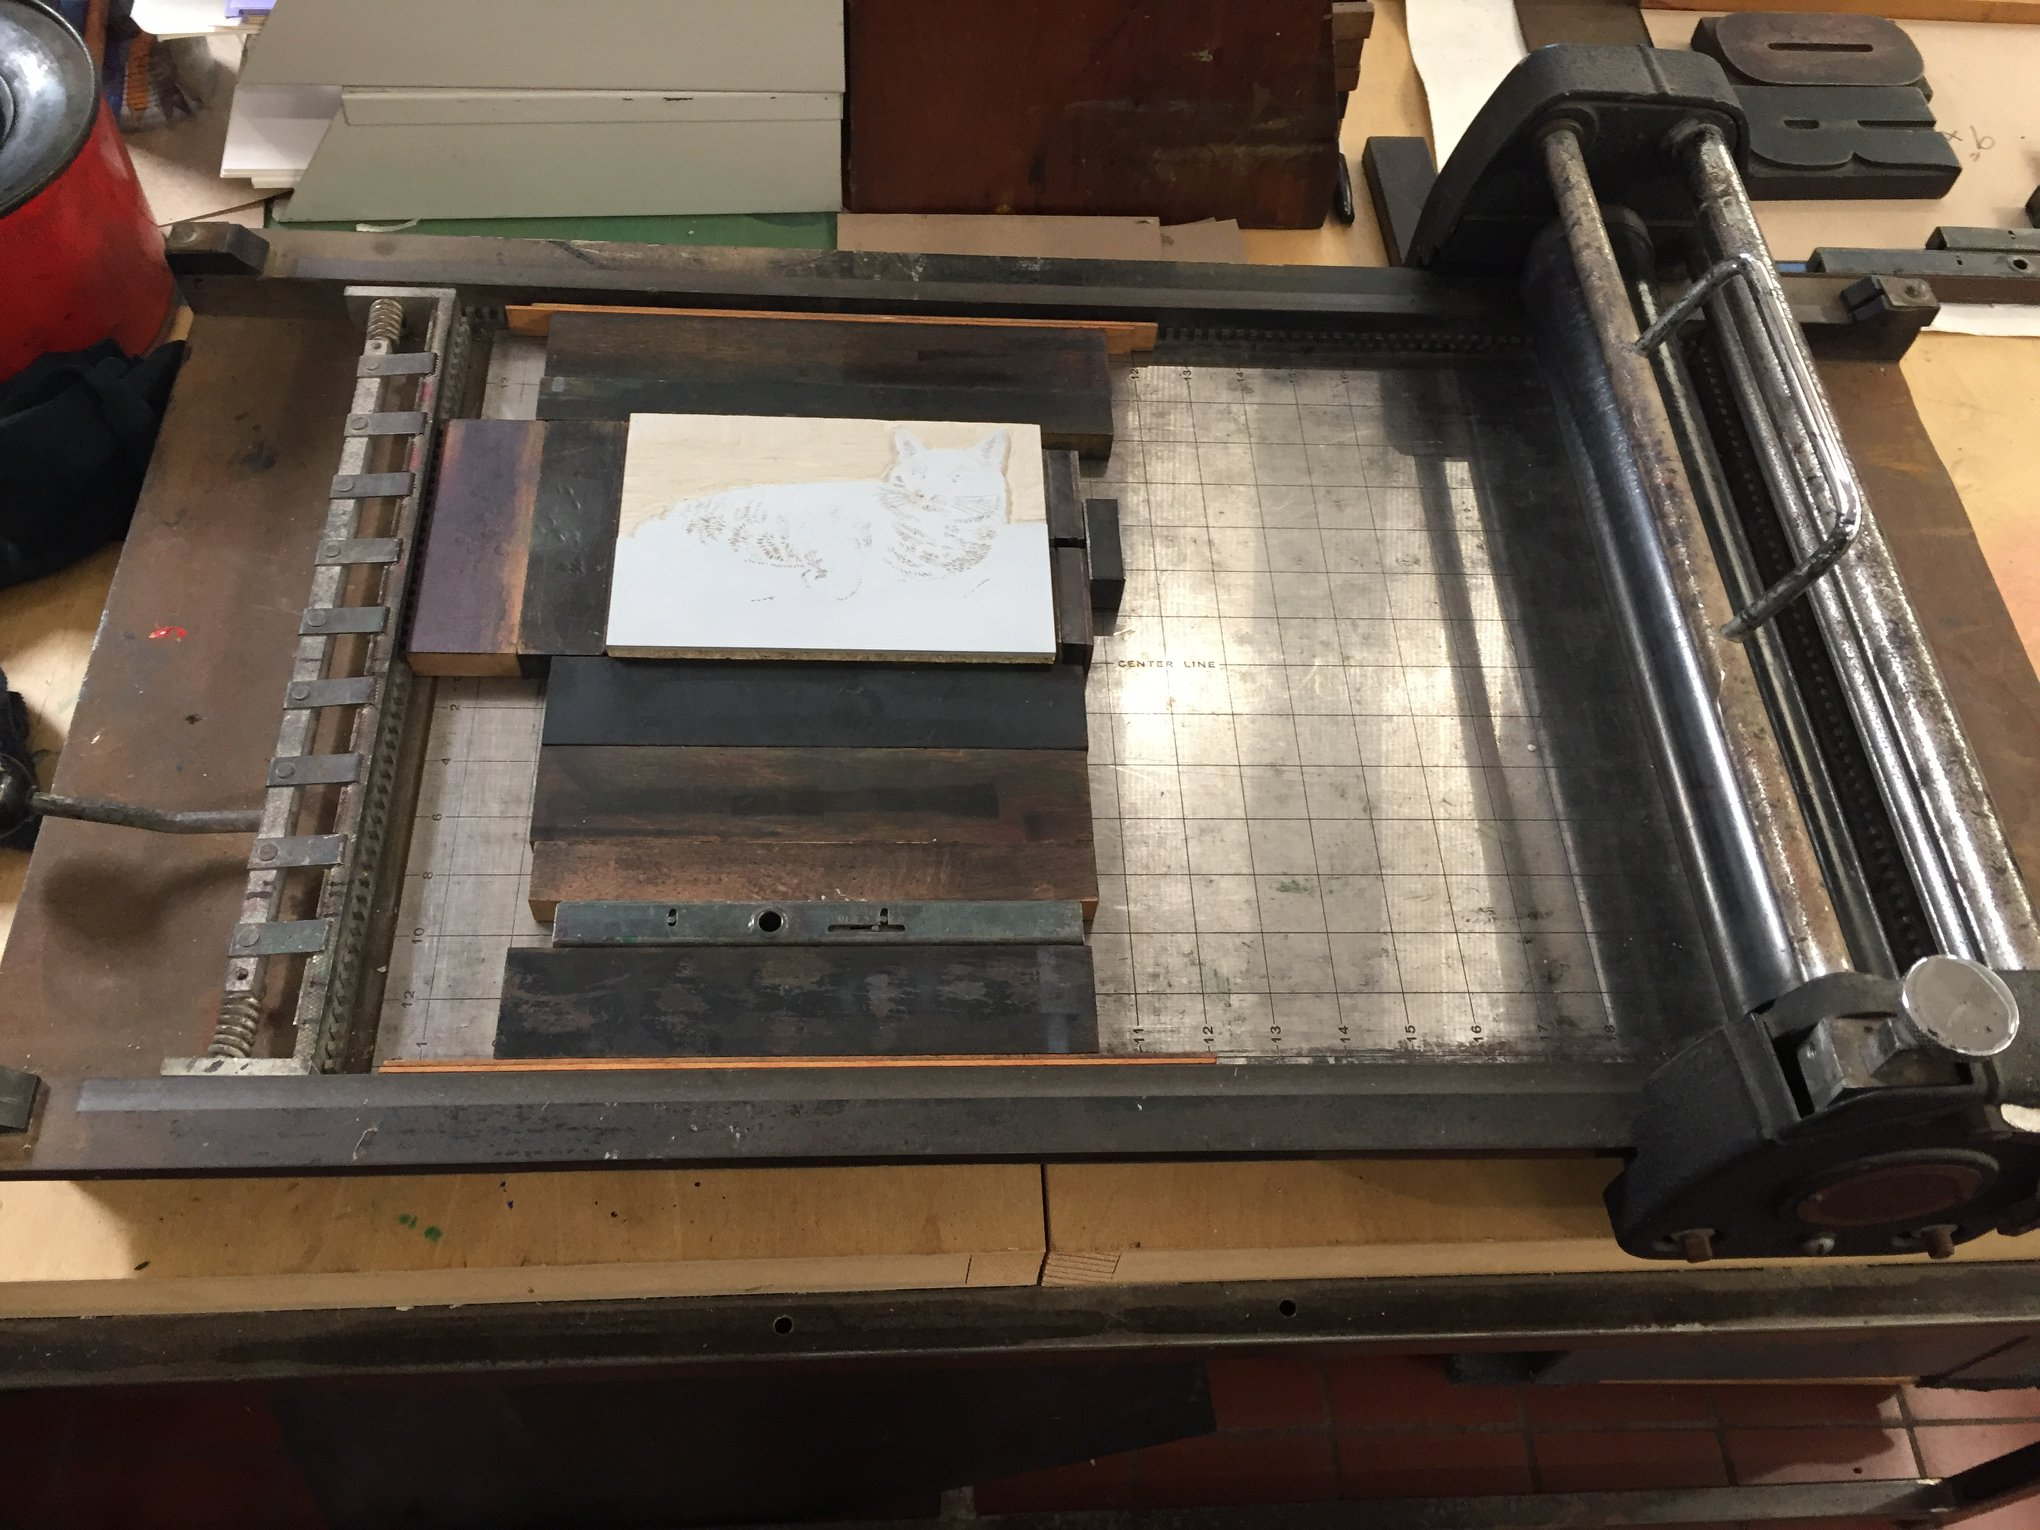 Here is a photo showing the whole proofing press with the block locked up with wooden furniture and magnets.